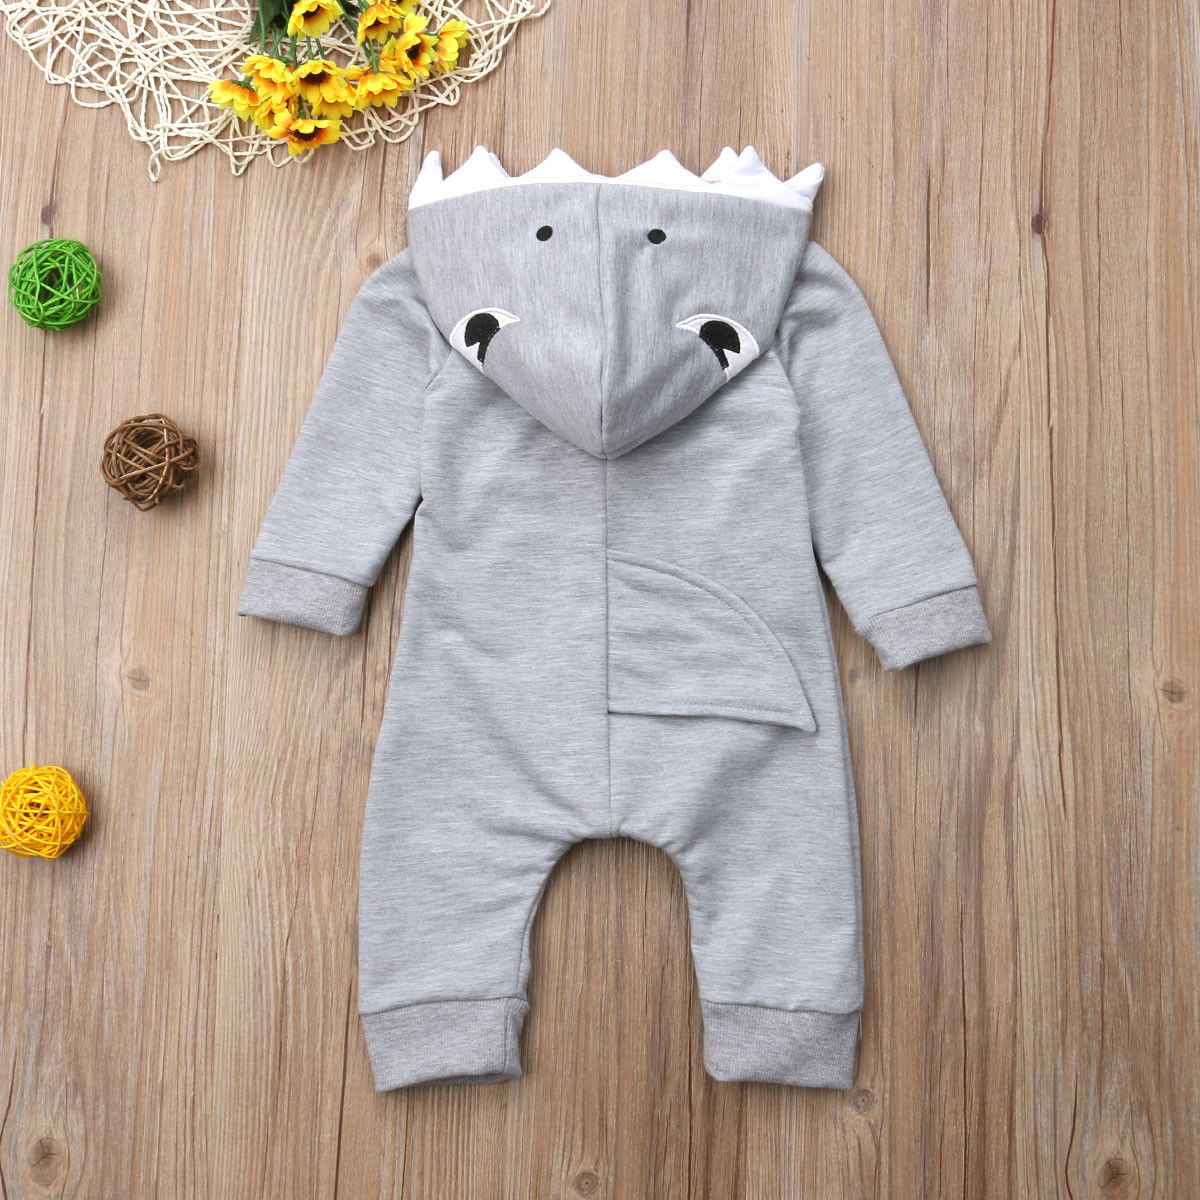 Mother & Kids Rompers Pudcoco Cute 3d Shark Romper Jumpsuit Winter Hooded Playsuit Costume For Boy Girl Baby Baby Girl Autumn Winter Warm Romper